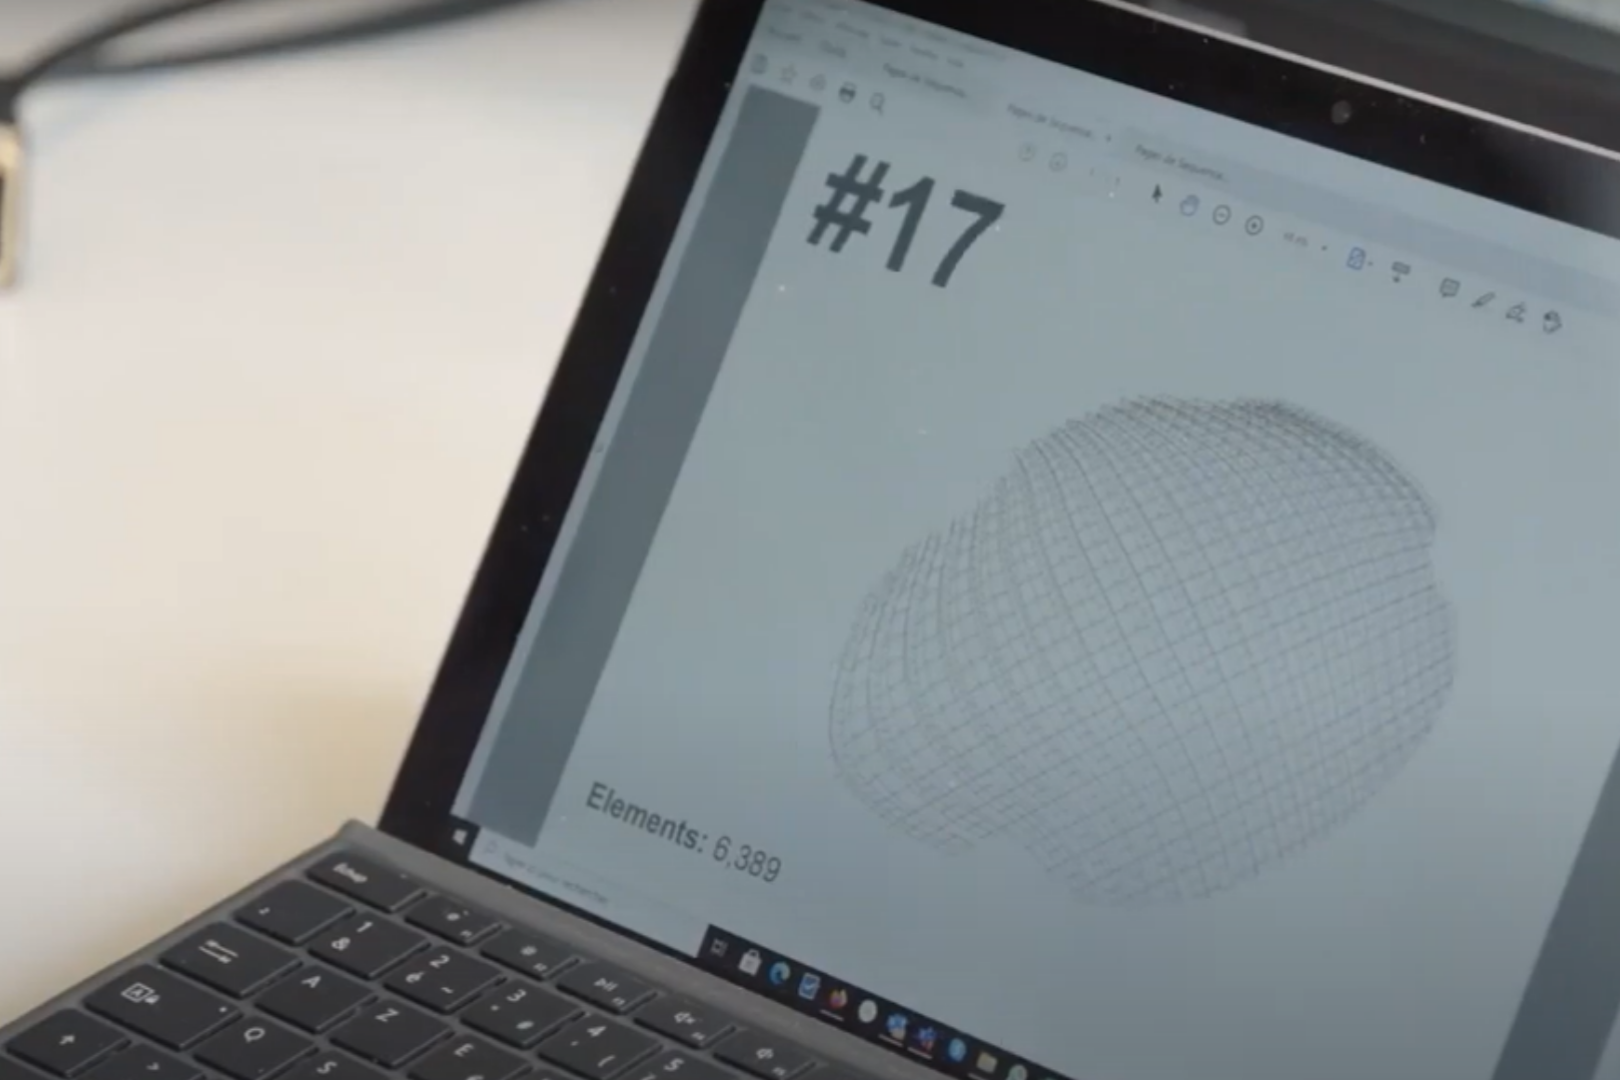 You are currently viewing Autodesk France parle de nous